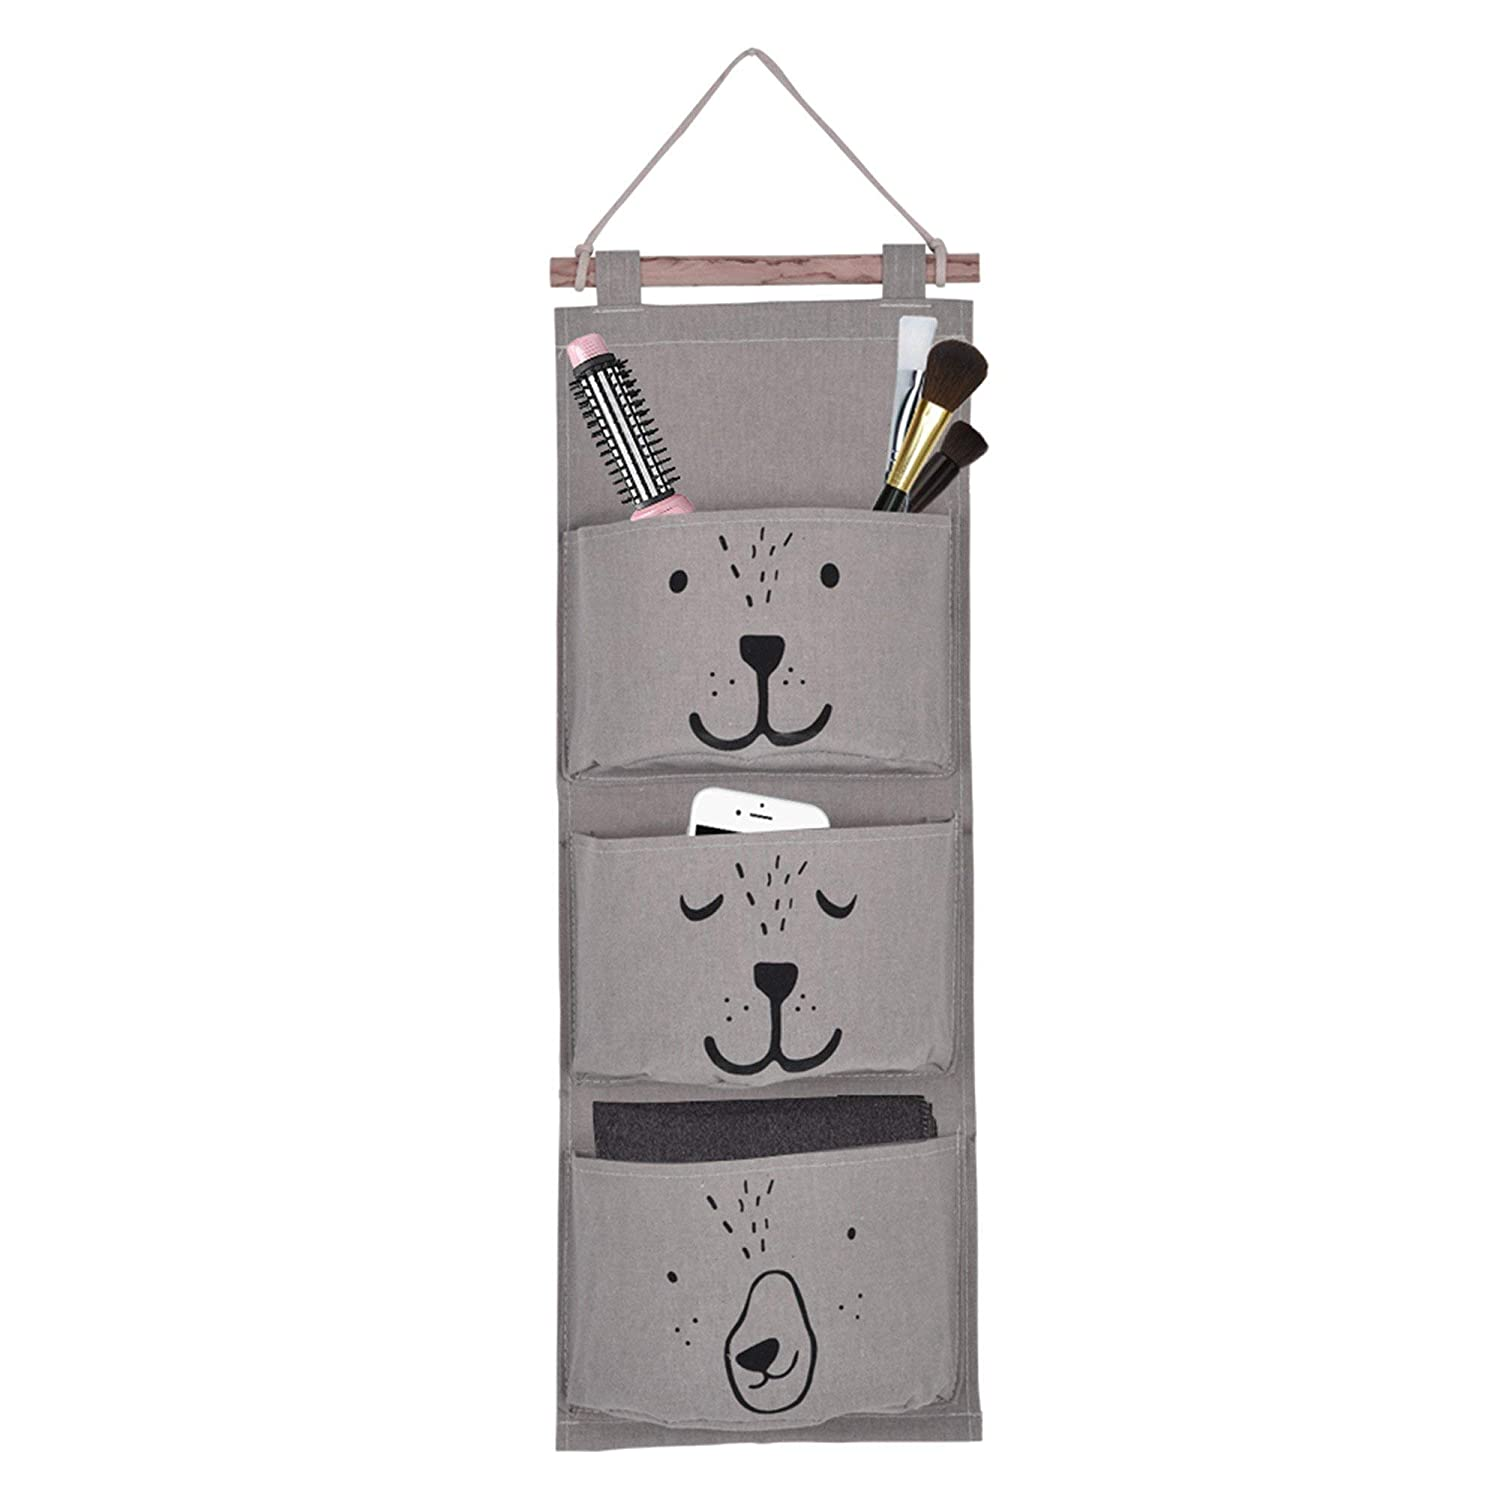 Storage Hanging Bag Linen Fabric Wall Door Pocket Hanging Bags for Socks Shoes Toys Jewelry 3 Pocket, Gray Yosoo LEPAE2308